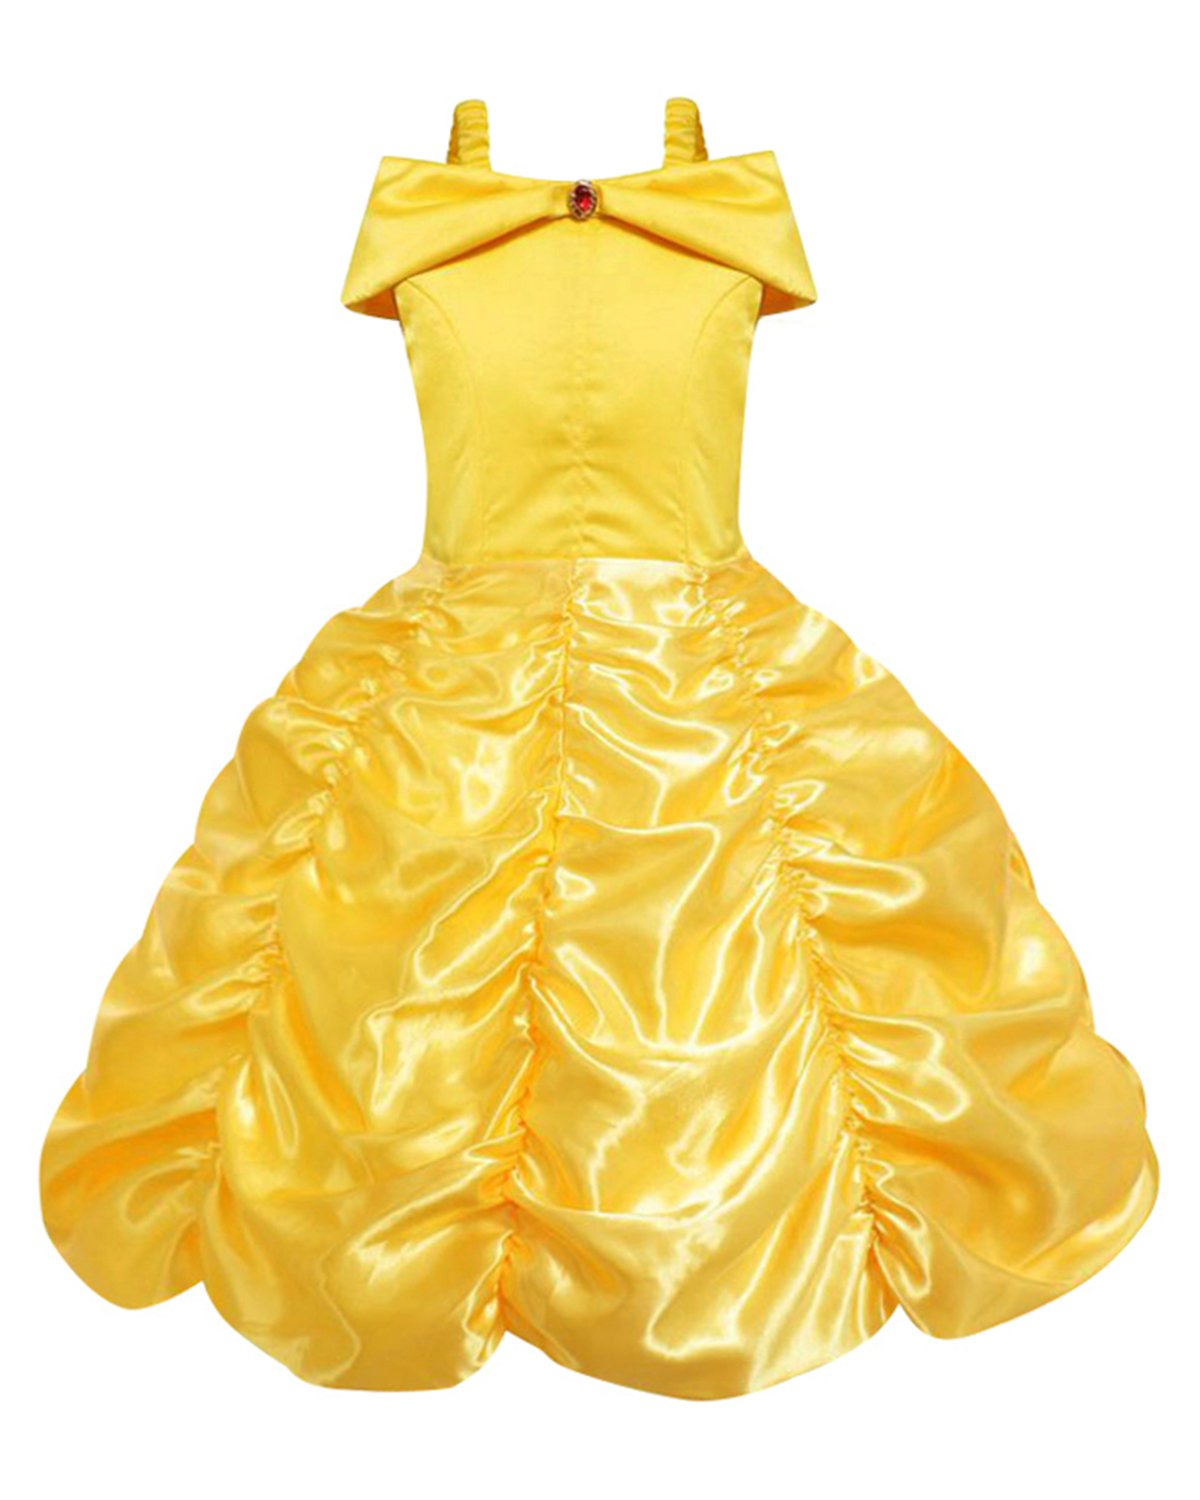 Eshiree Layered Princess Belle Costume Off Shoulder Yellow Party Dress up (Yellow, 4T)